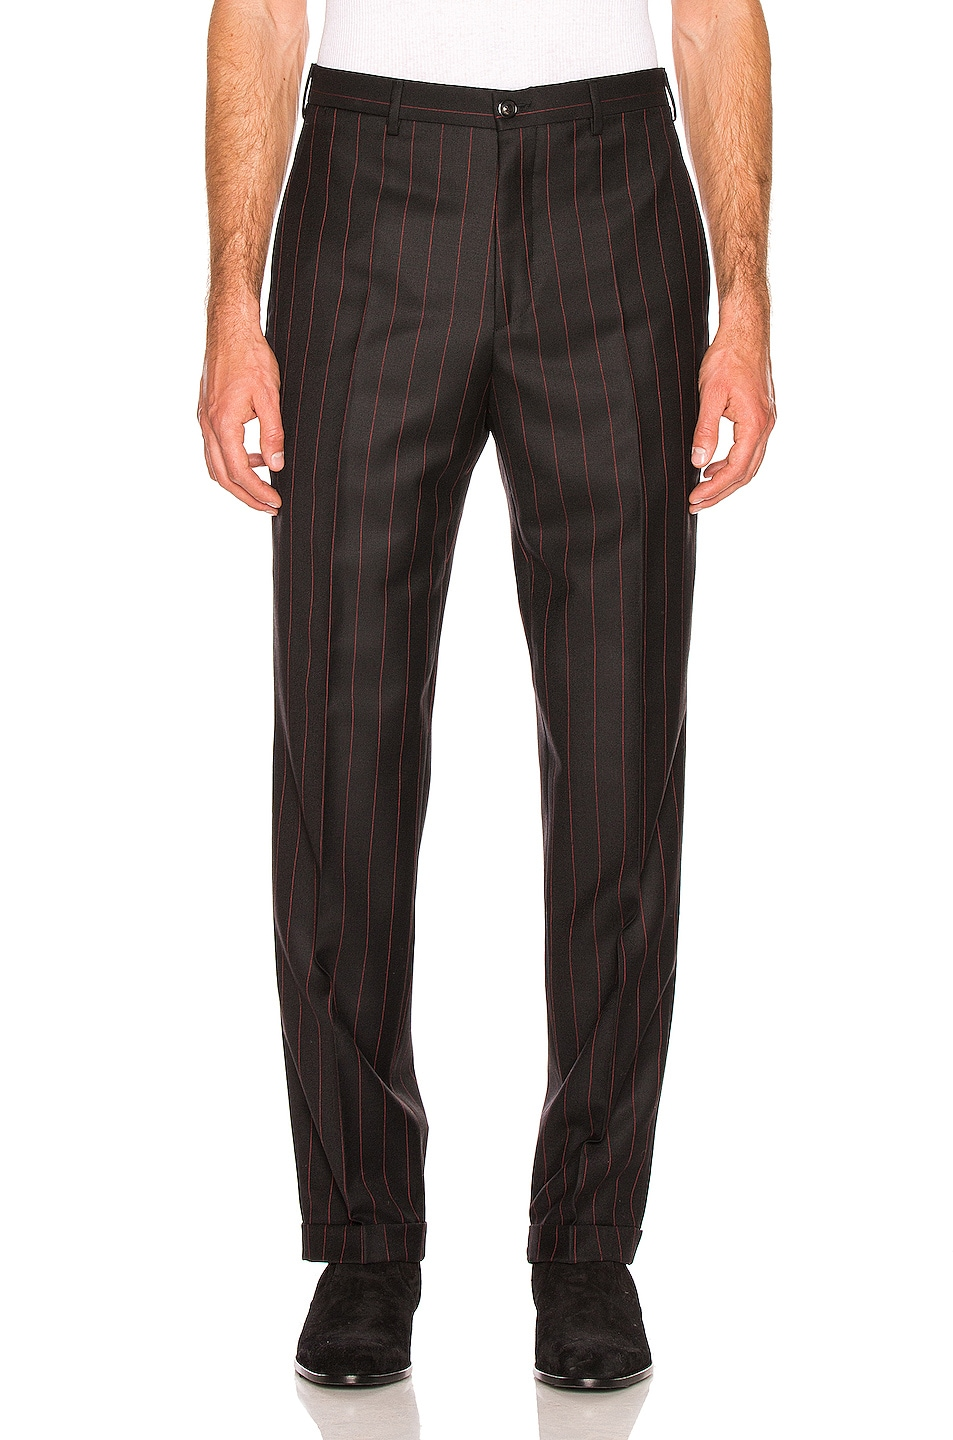 Image 1 of Cobra SC Classic Trousers in Black & Red Pinstripe